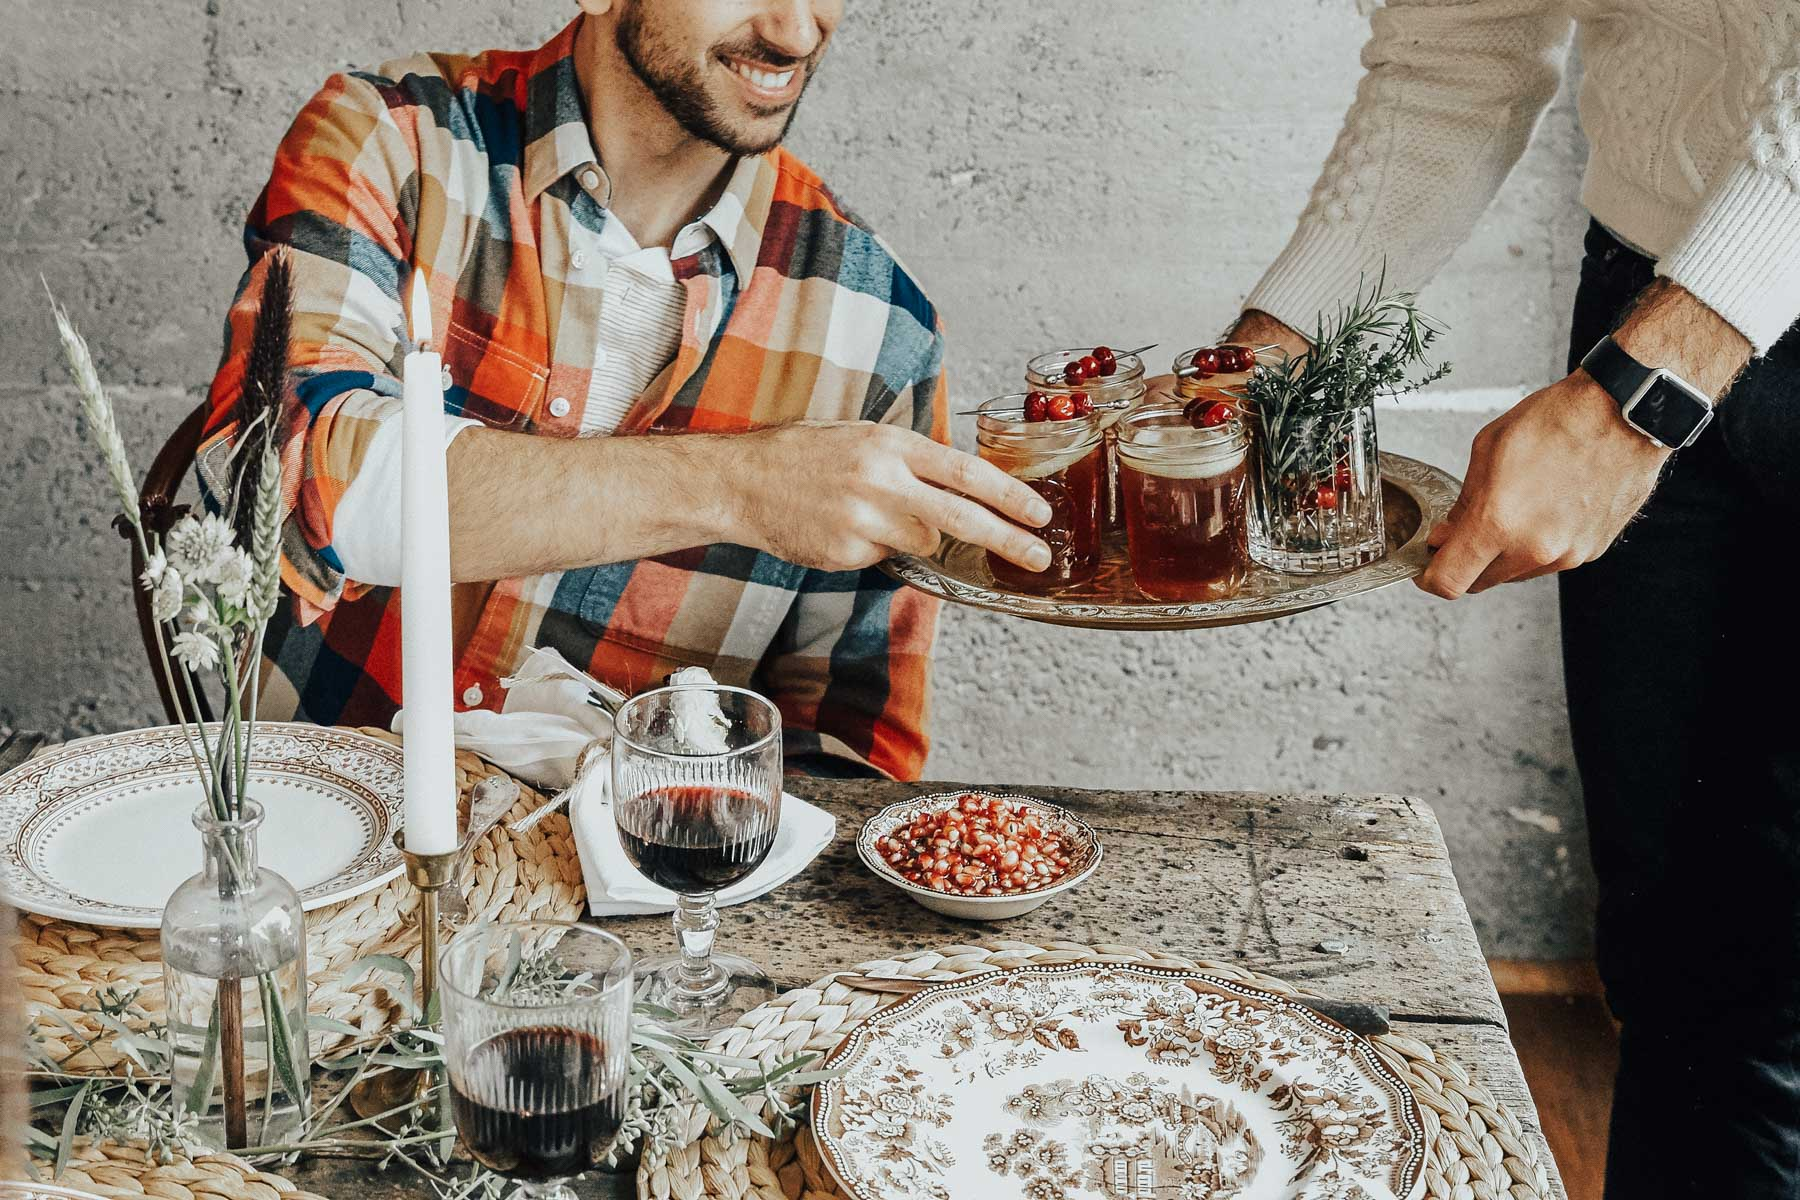 Ask Amanda: My fiancé invited his whole family over for Thanksgiving without telling me